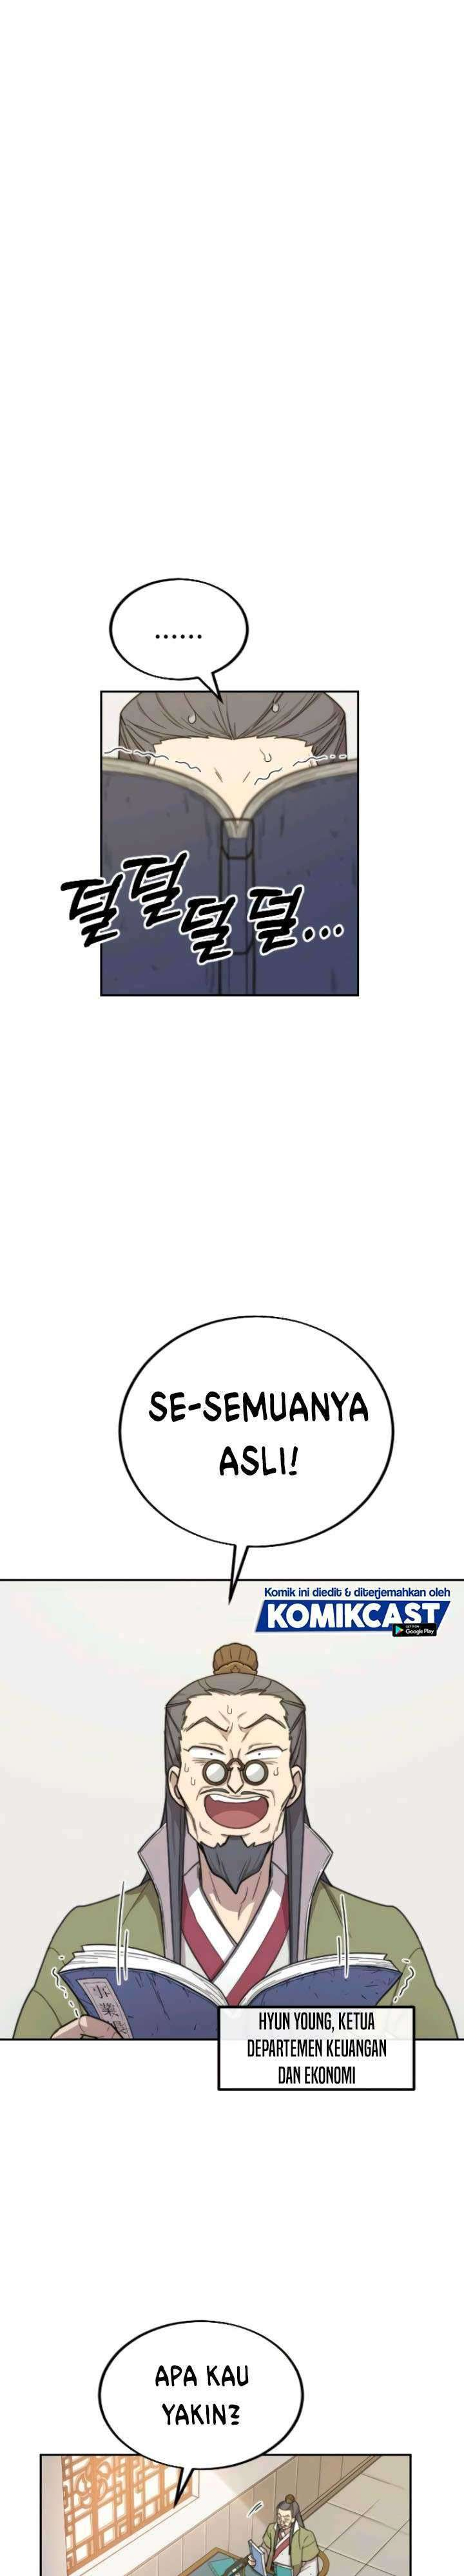 Return of the Flowery Mountain Sect Chapter 9 Bahasa Indonesia page 91